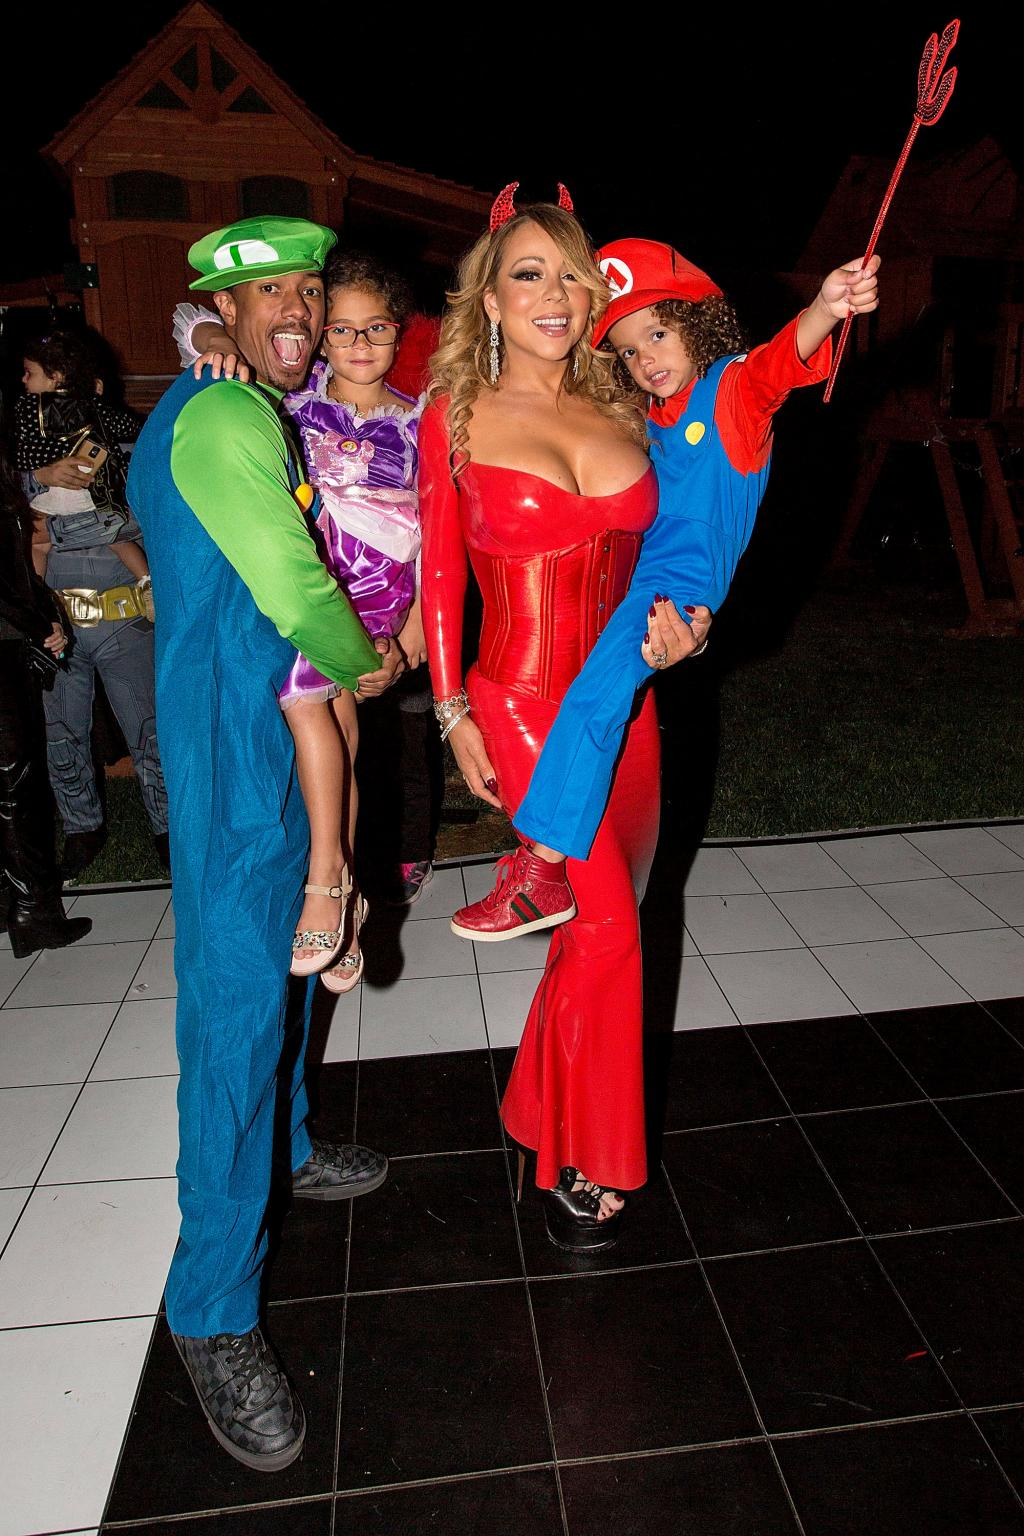 Mariah Carey Reunited with Ex Nick Cannon for Halloween Fun with Their Kids